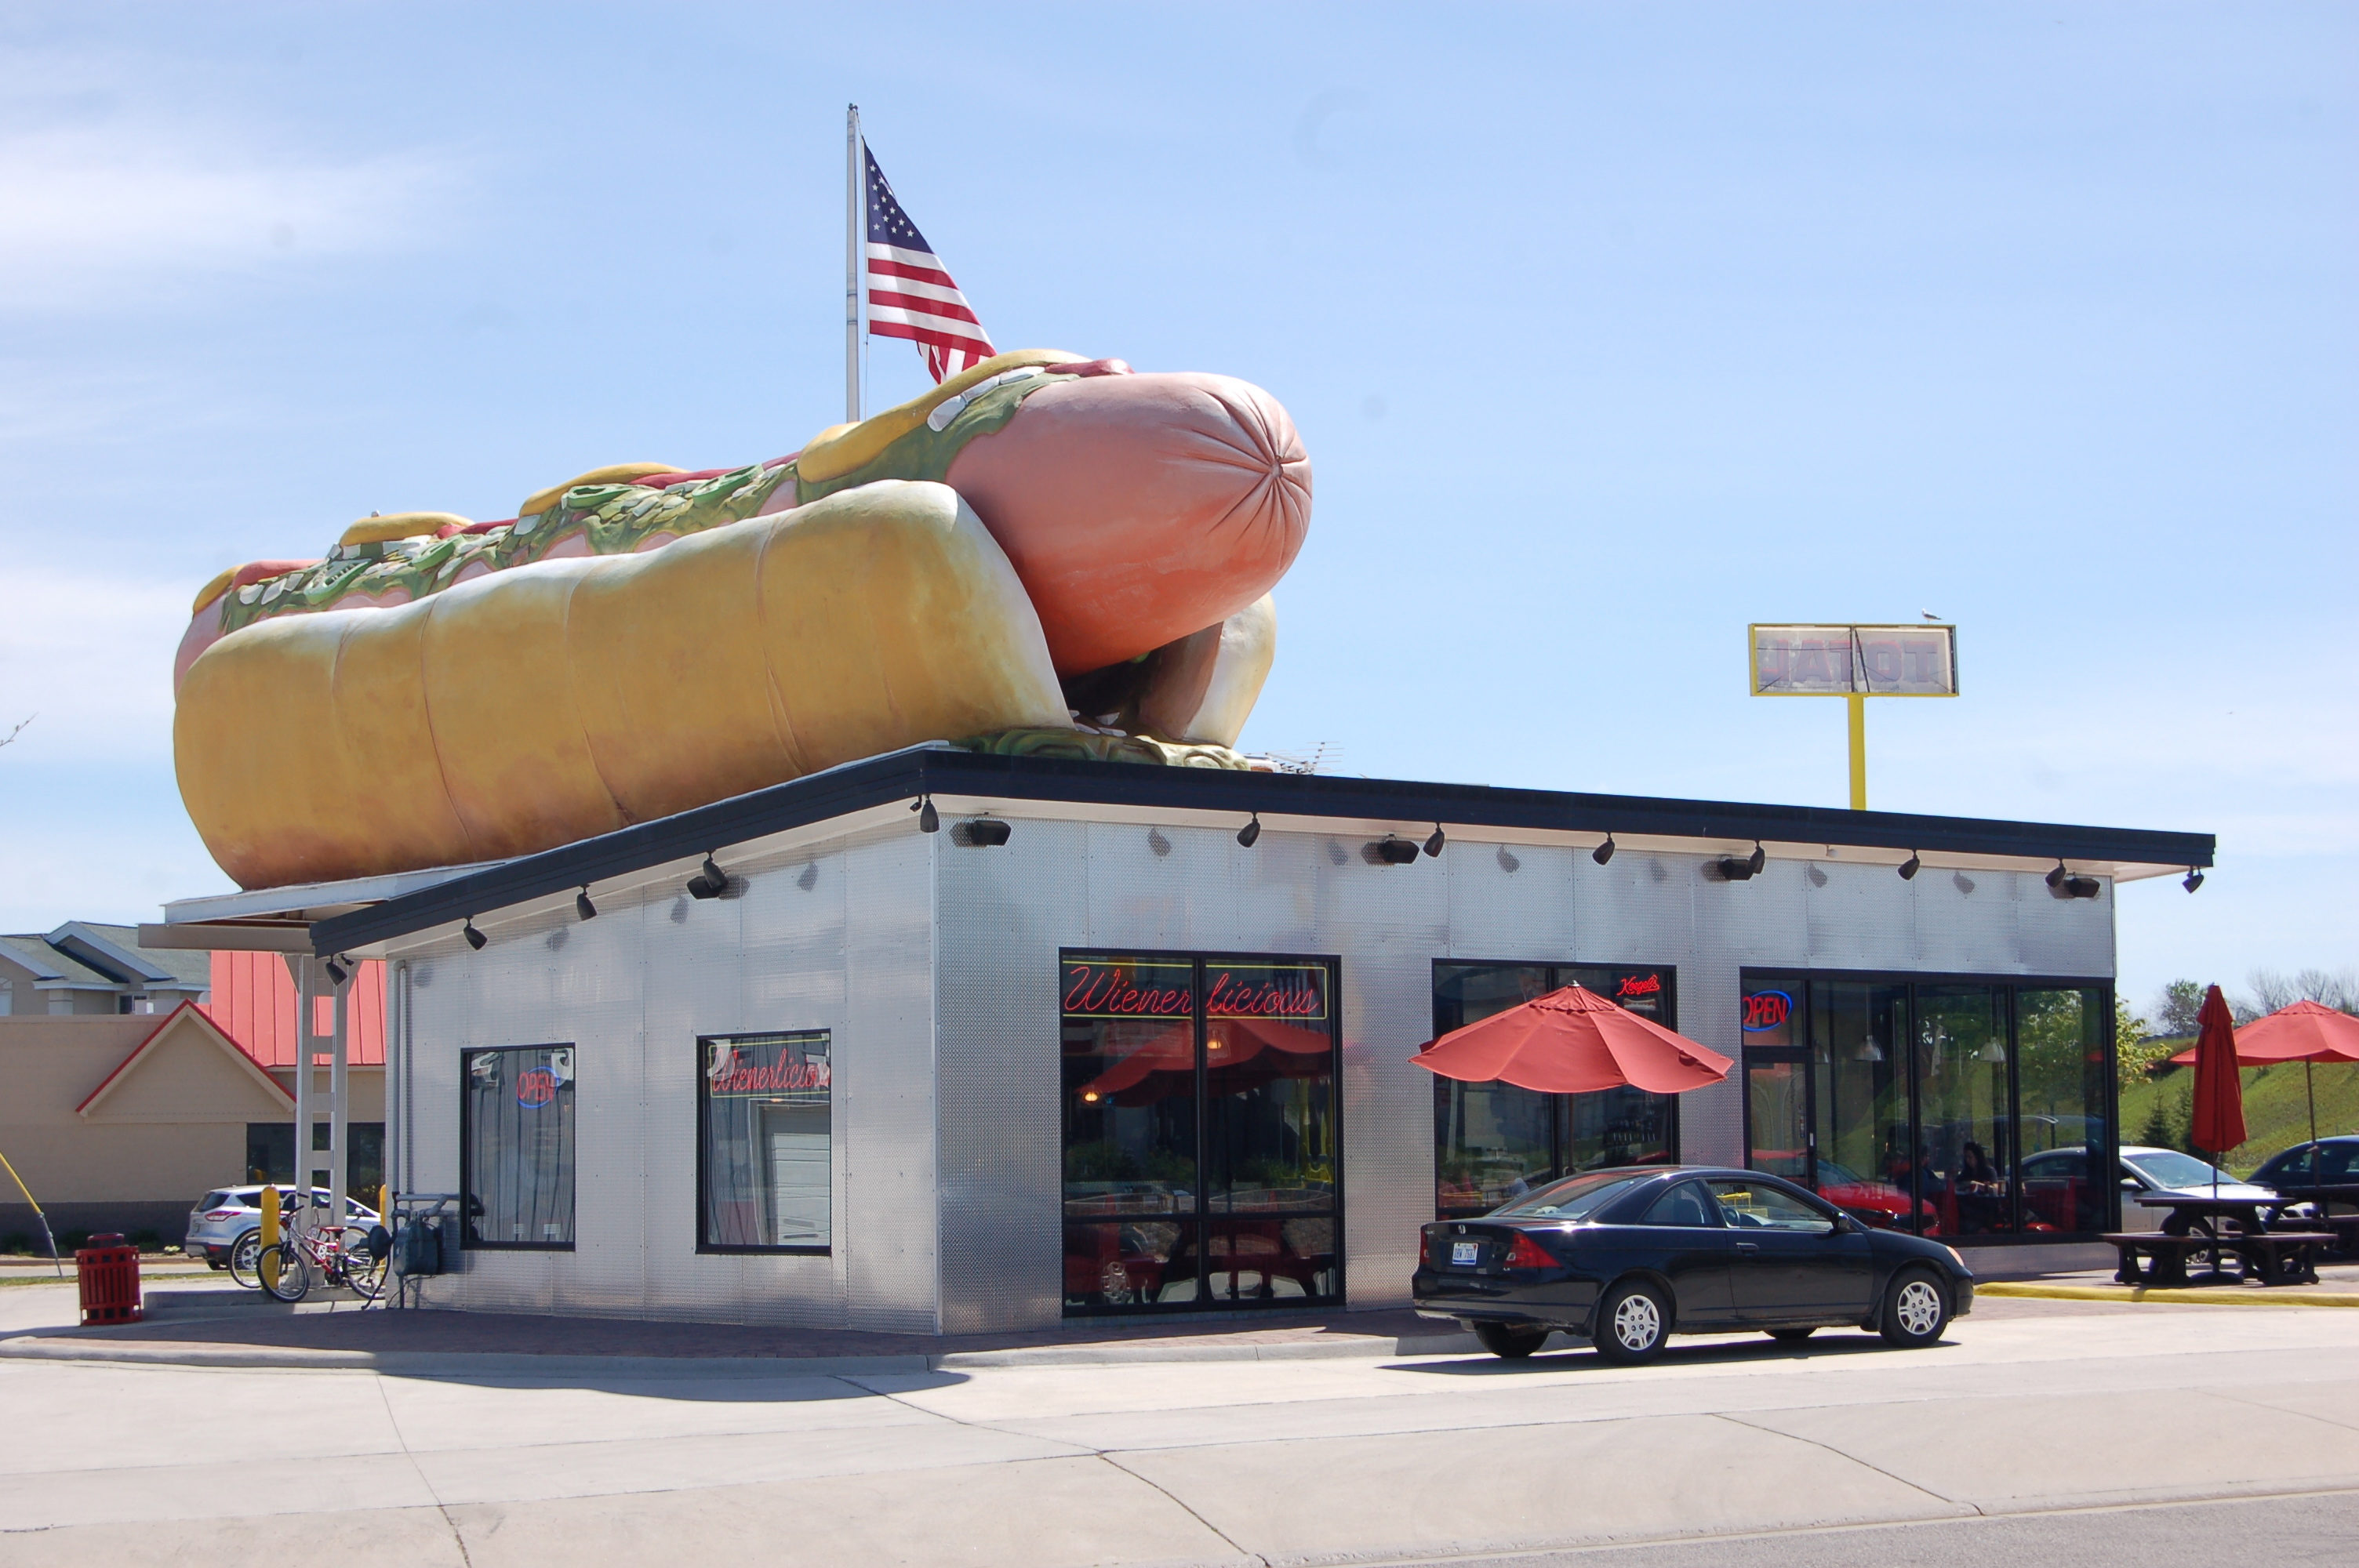 Wienerlicious In Mackinaw City America S Largest Hot Dog